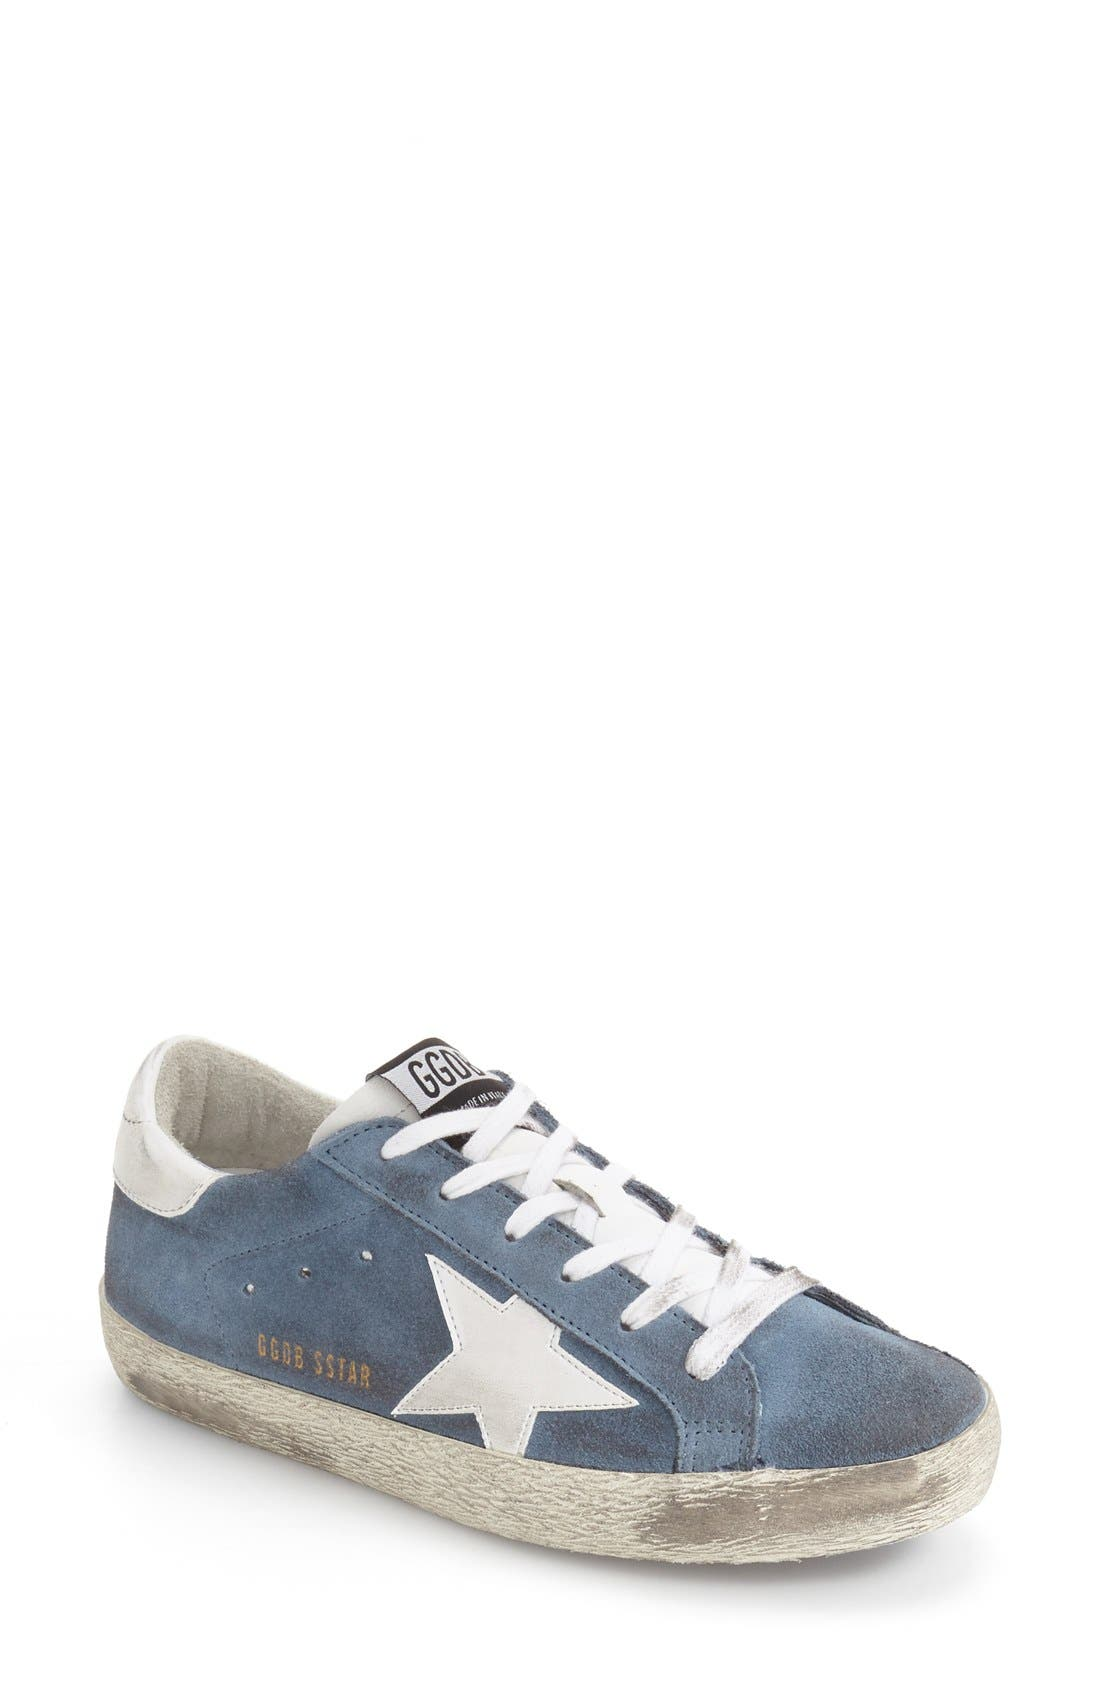 Main Image - Golden Goose 'Superstar' Low Top Sneaker (Women)